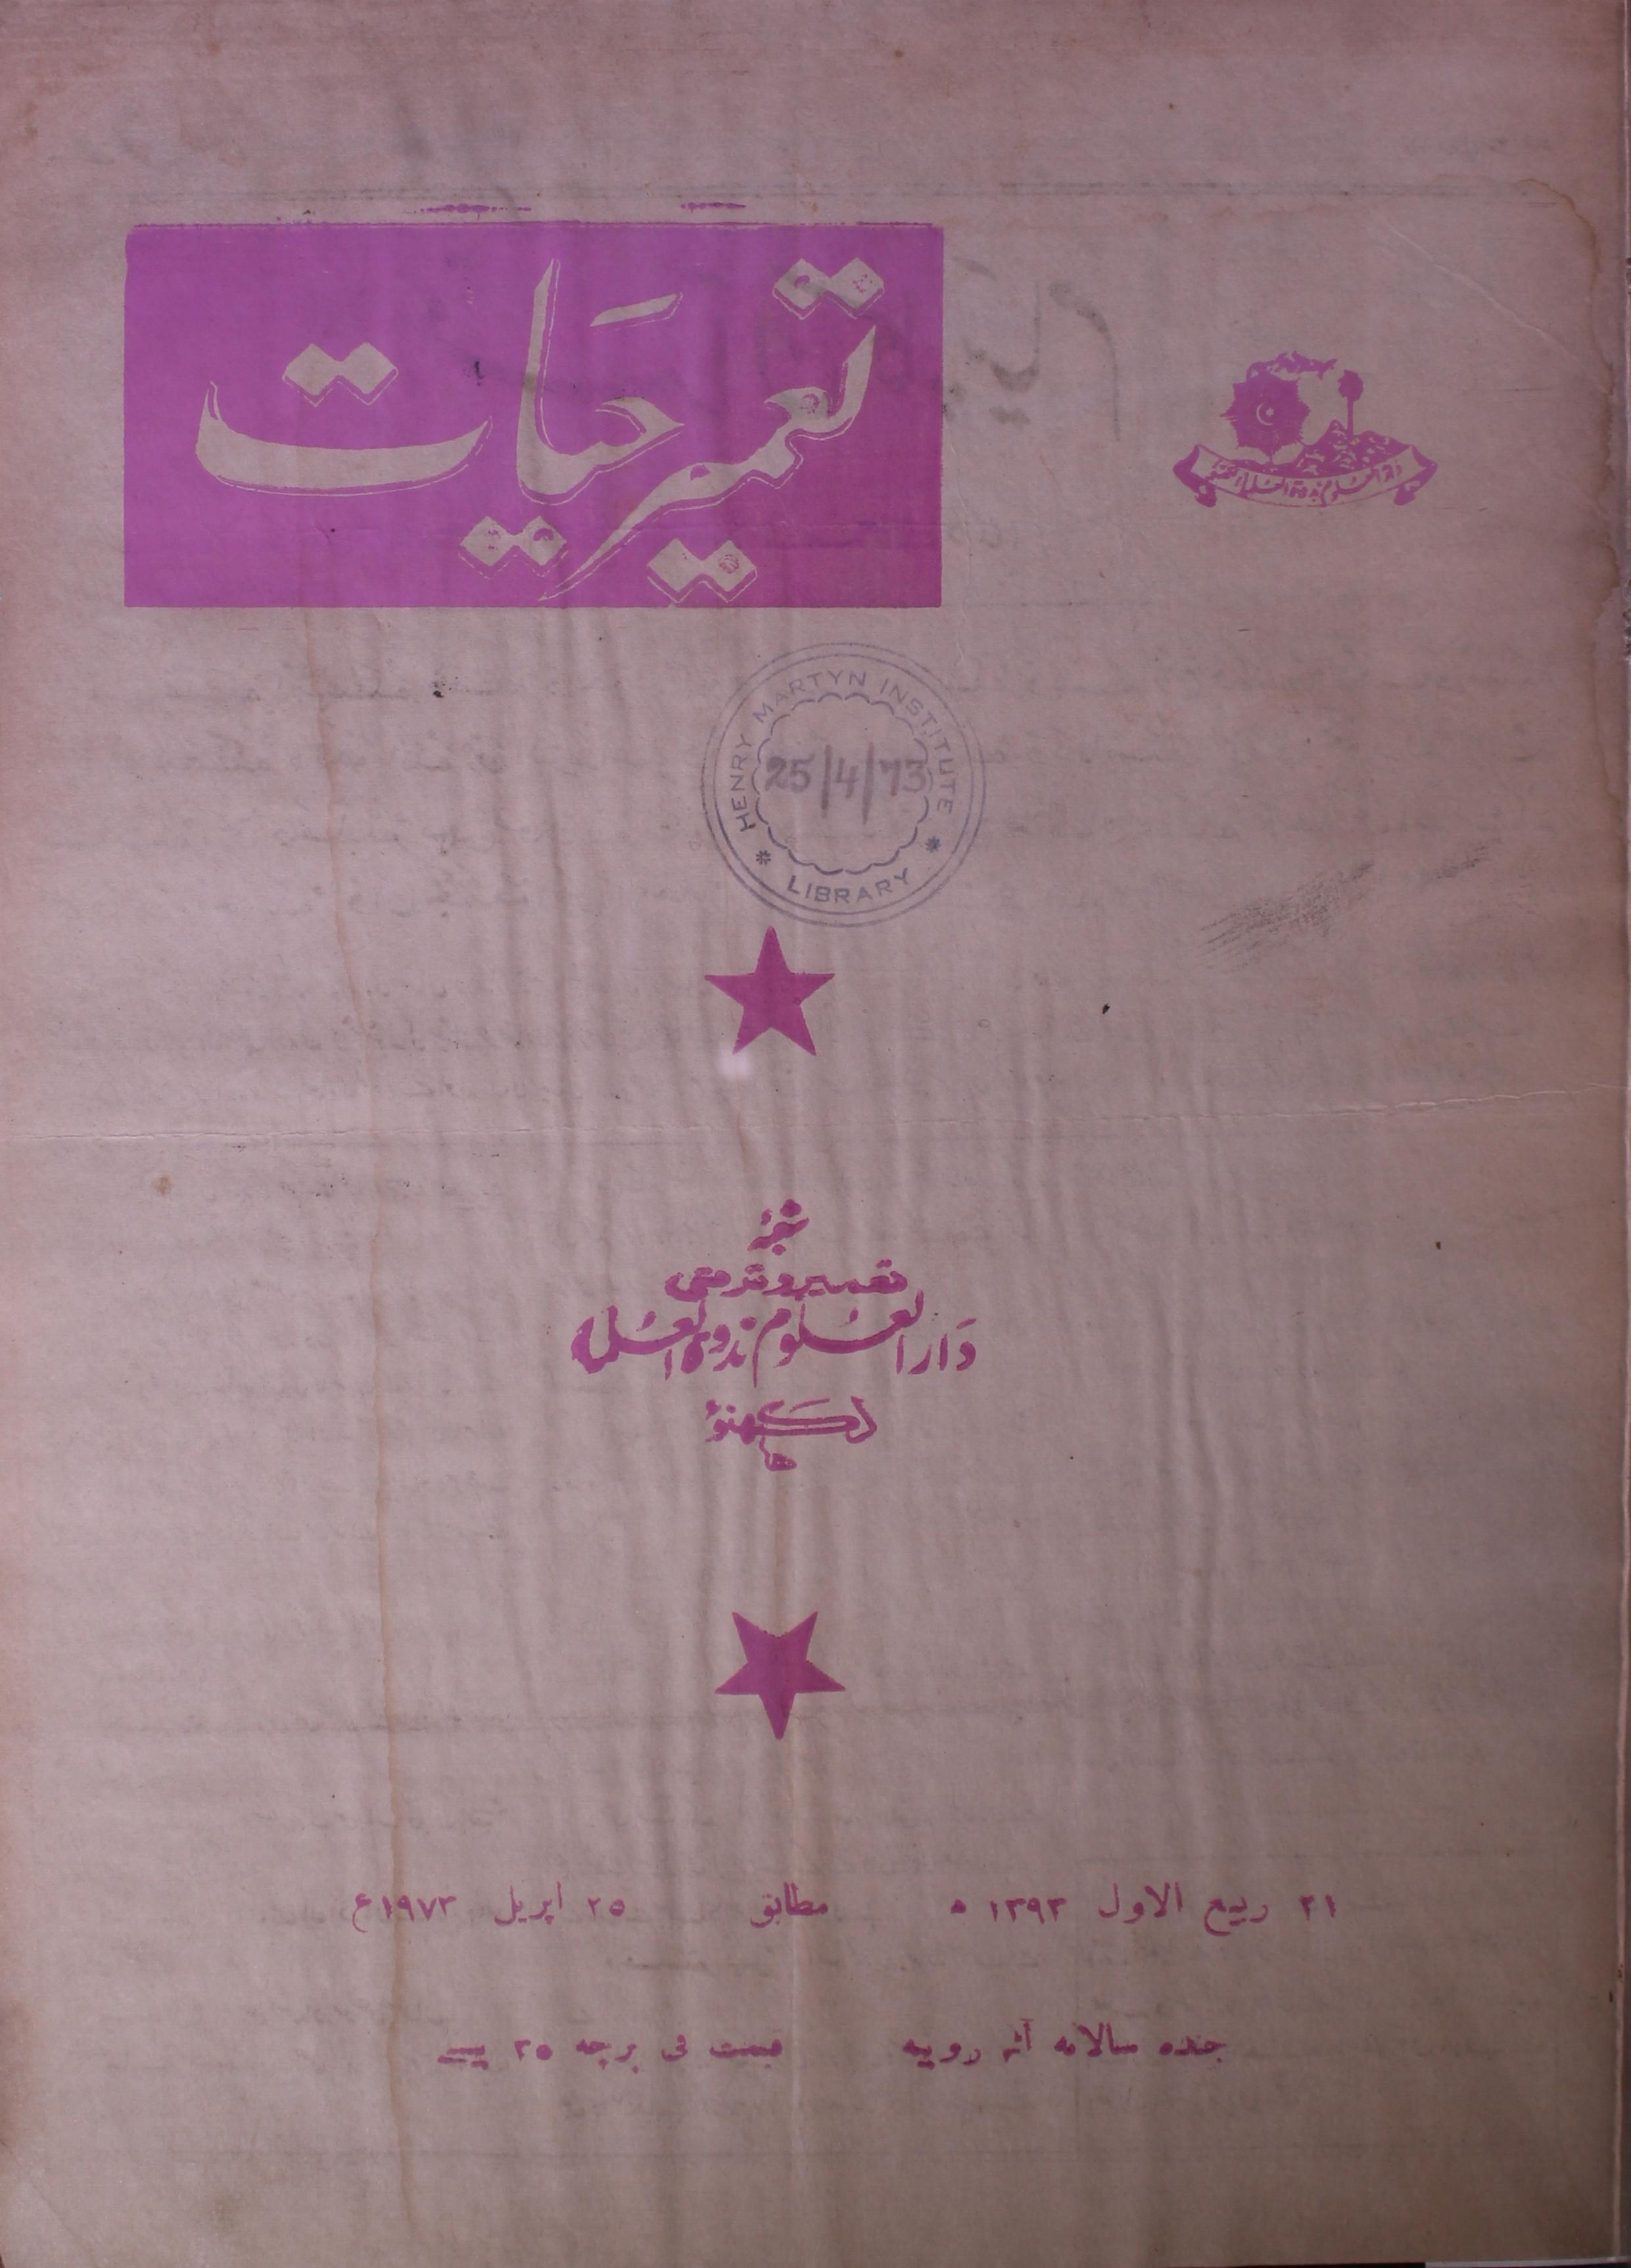 Tameer E Hayat Jild 10 No 12 .25 April 1973